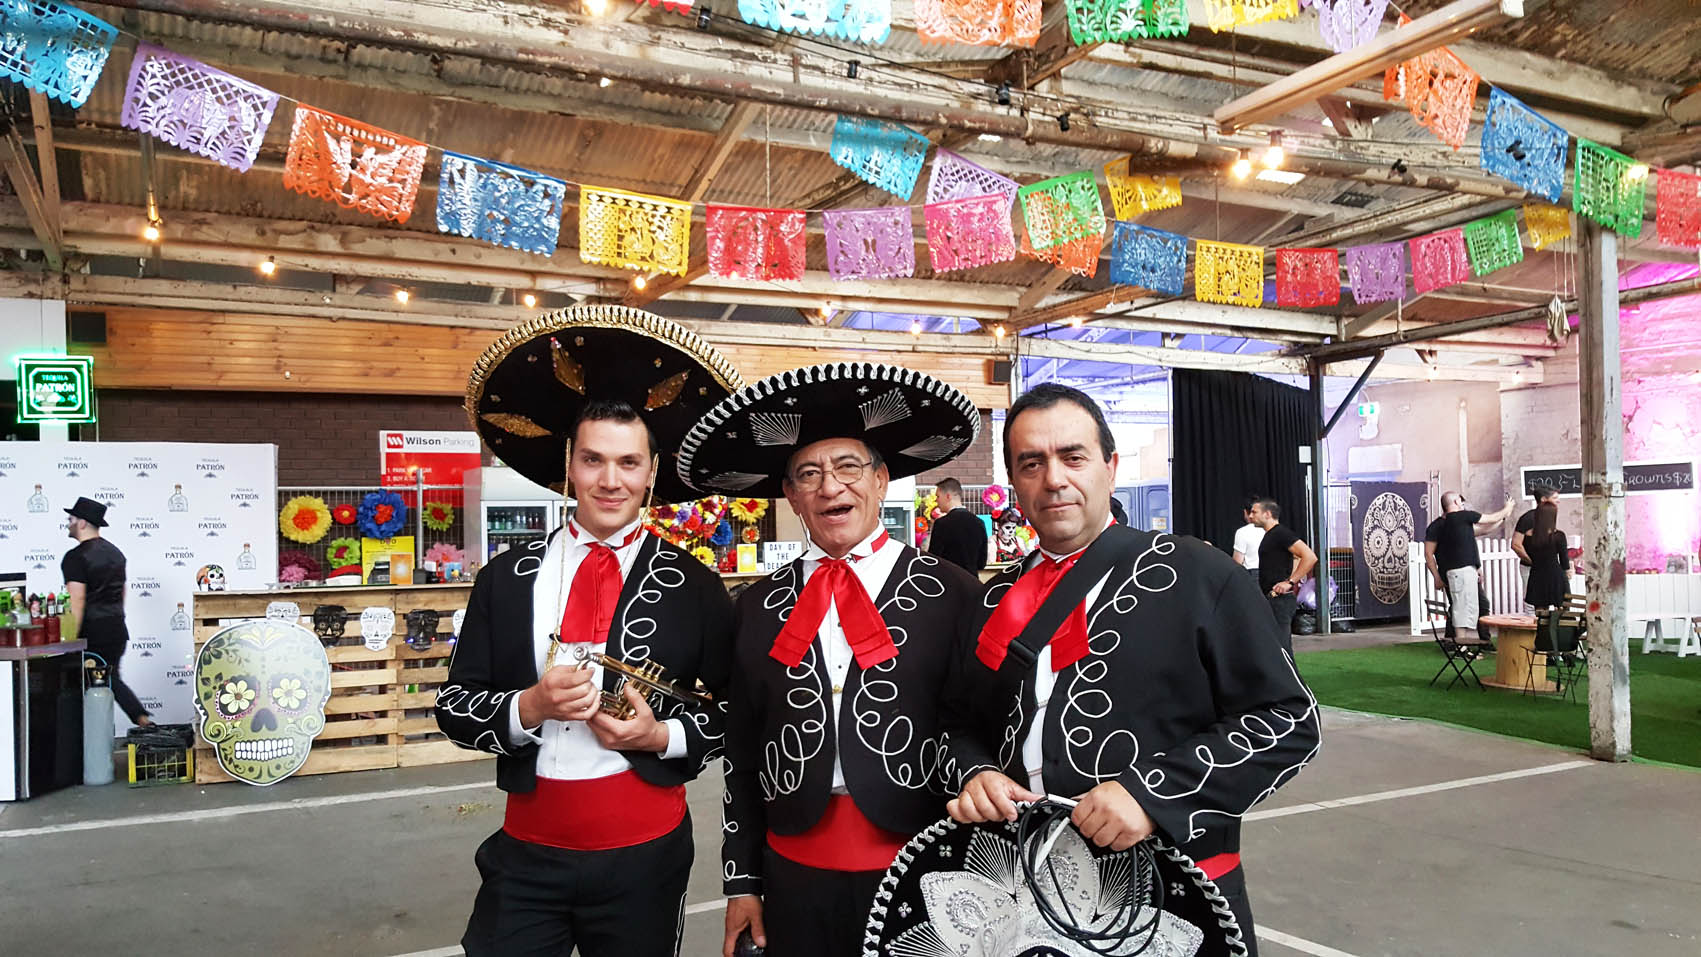 halifax-street-mexican-mariachi-dady-of-the-dea-australia-party